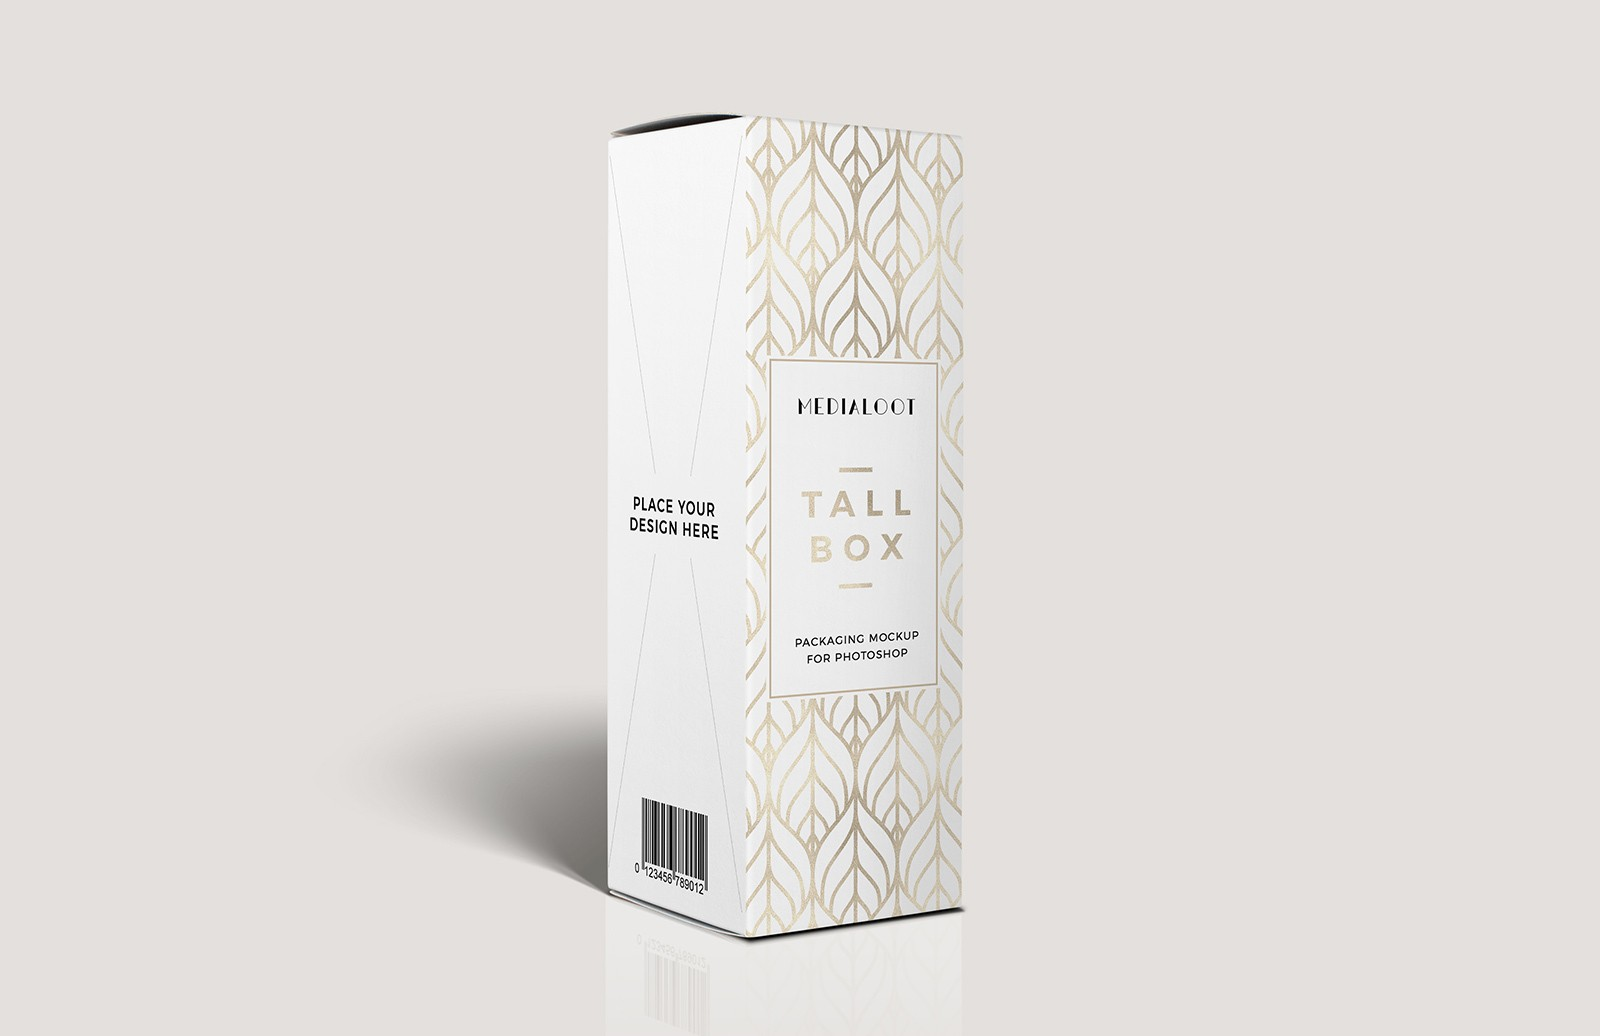 Tall Box Packaging Mockup for Photoshop